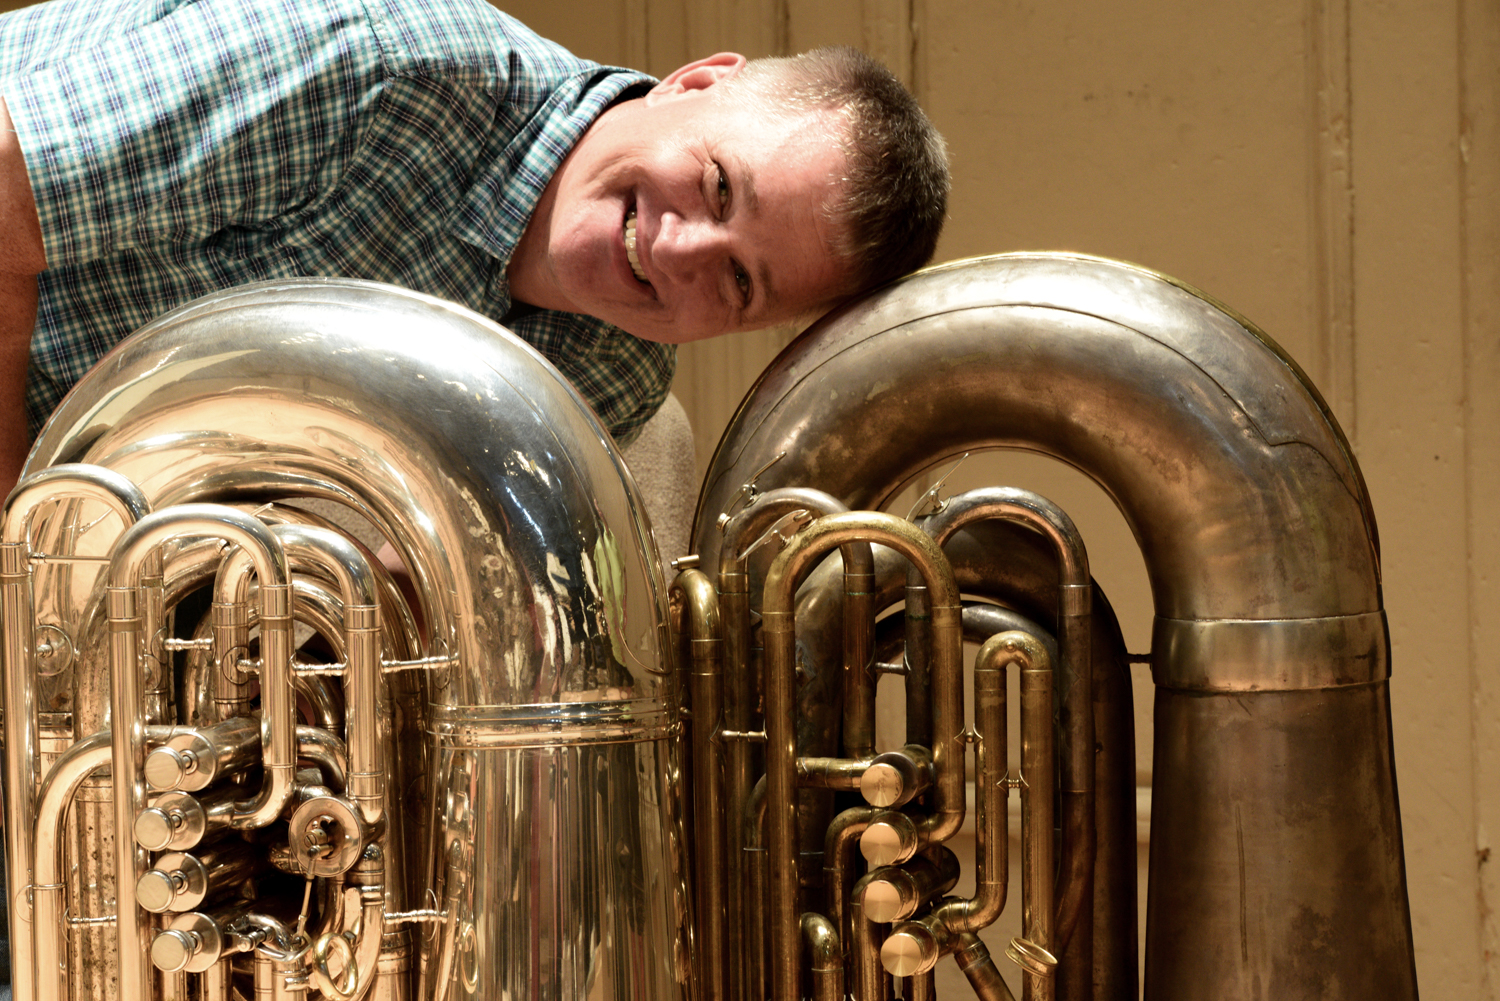 Mike Roylance poses midweek with the two tubas he tried out for Tchaikovsky No. 6.  (Left to Right) Nirschl 6/4 CC and 1920's era Holton BBb.